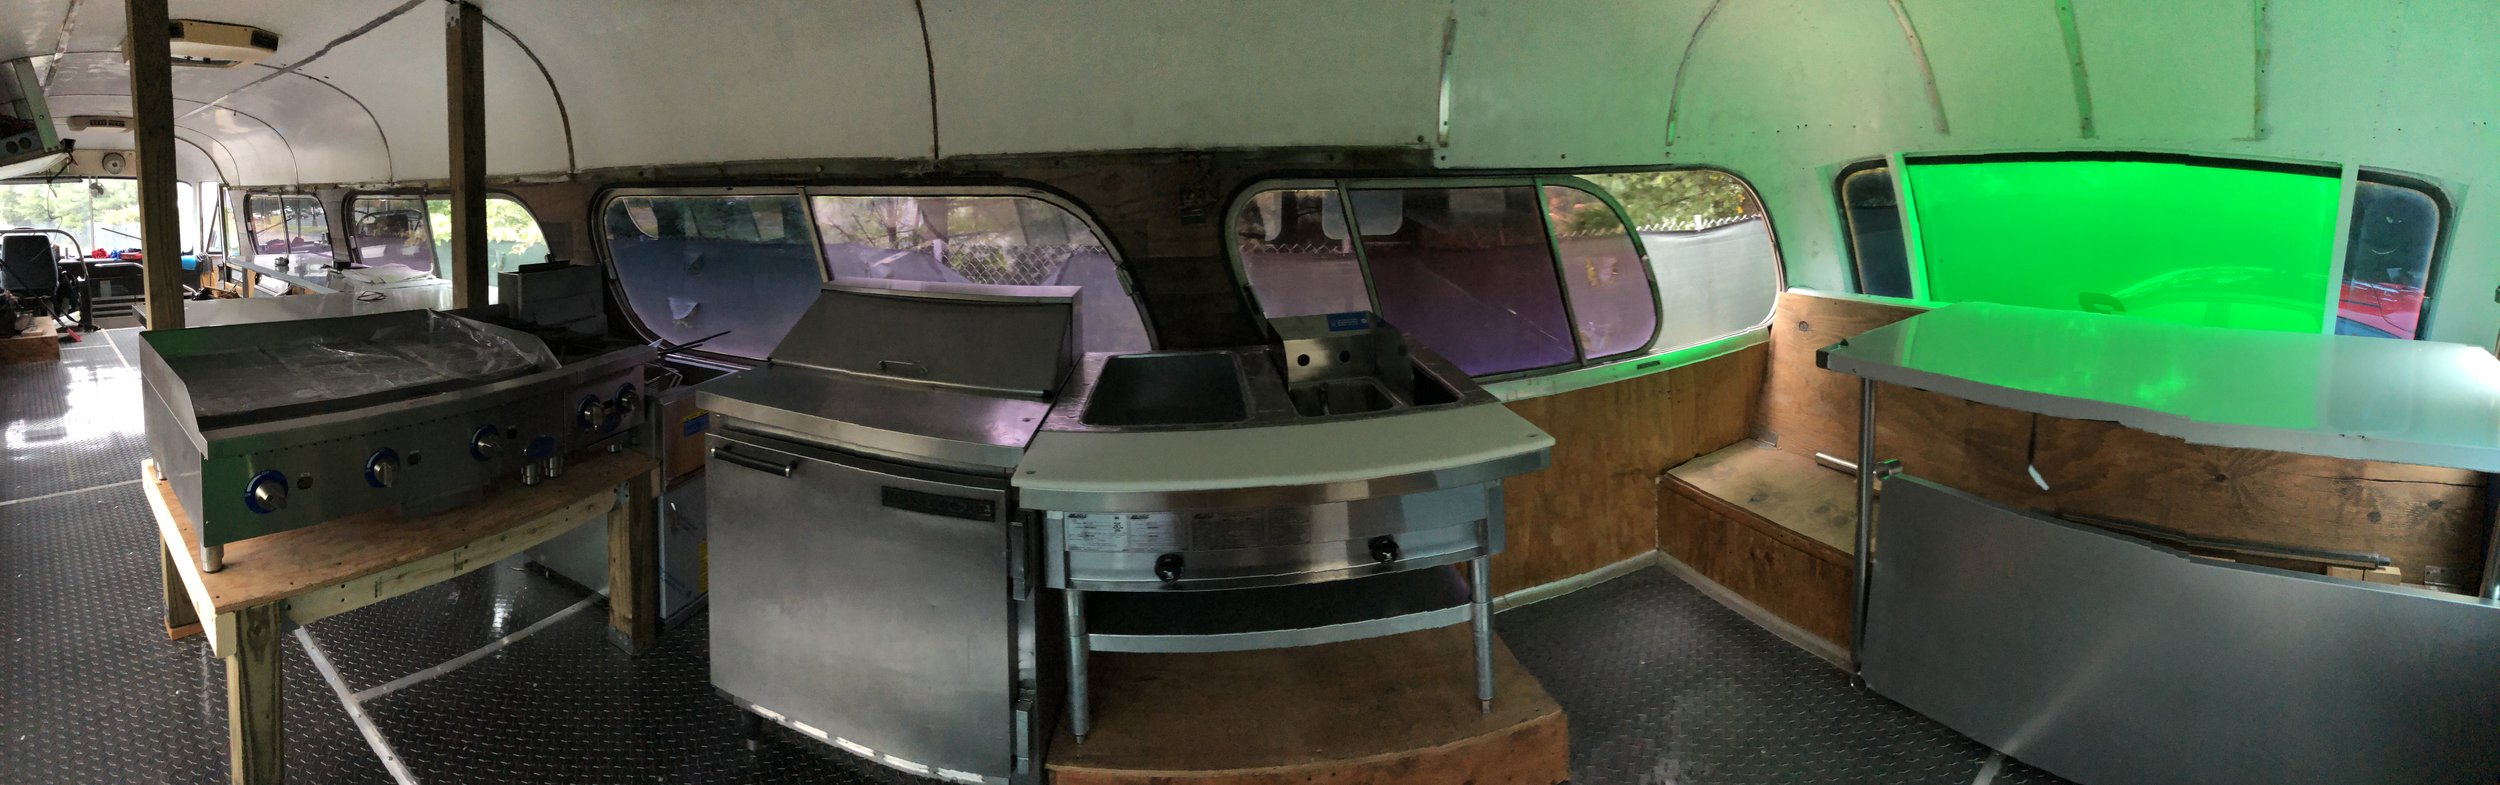 panoramic of the back kitchen in the bus